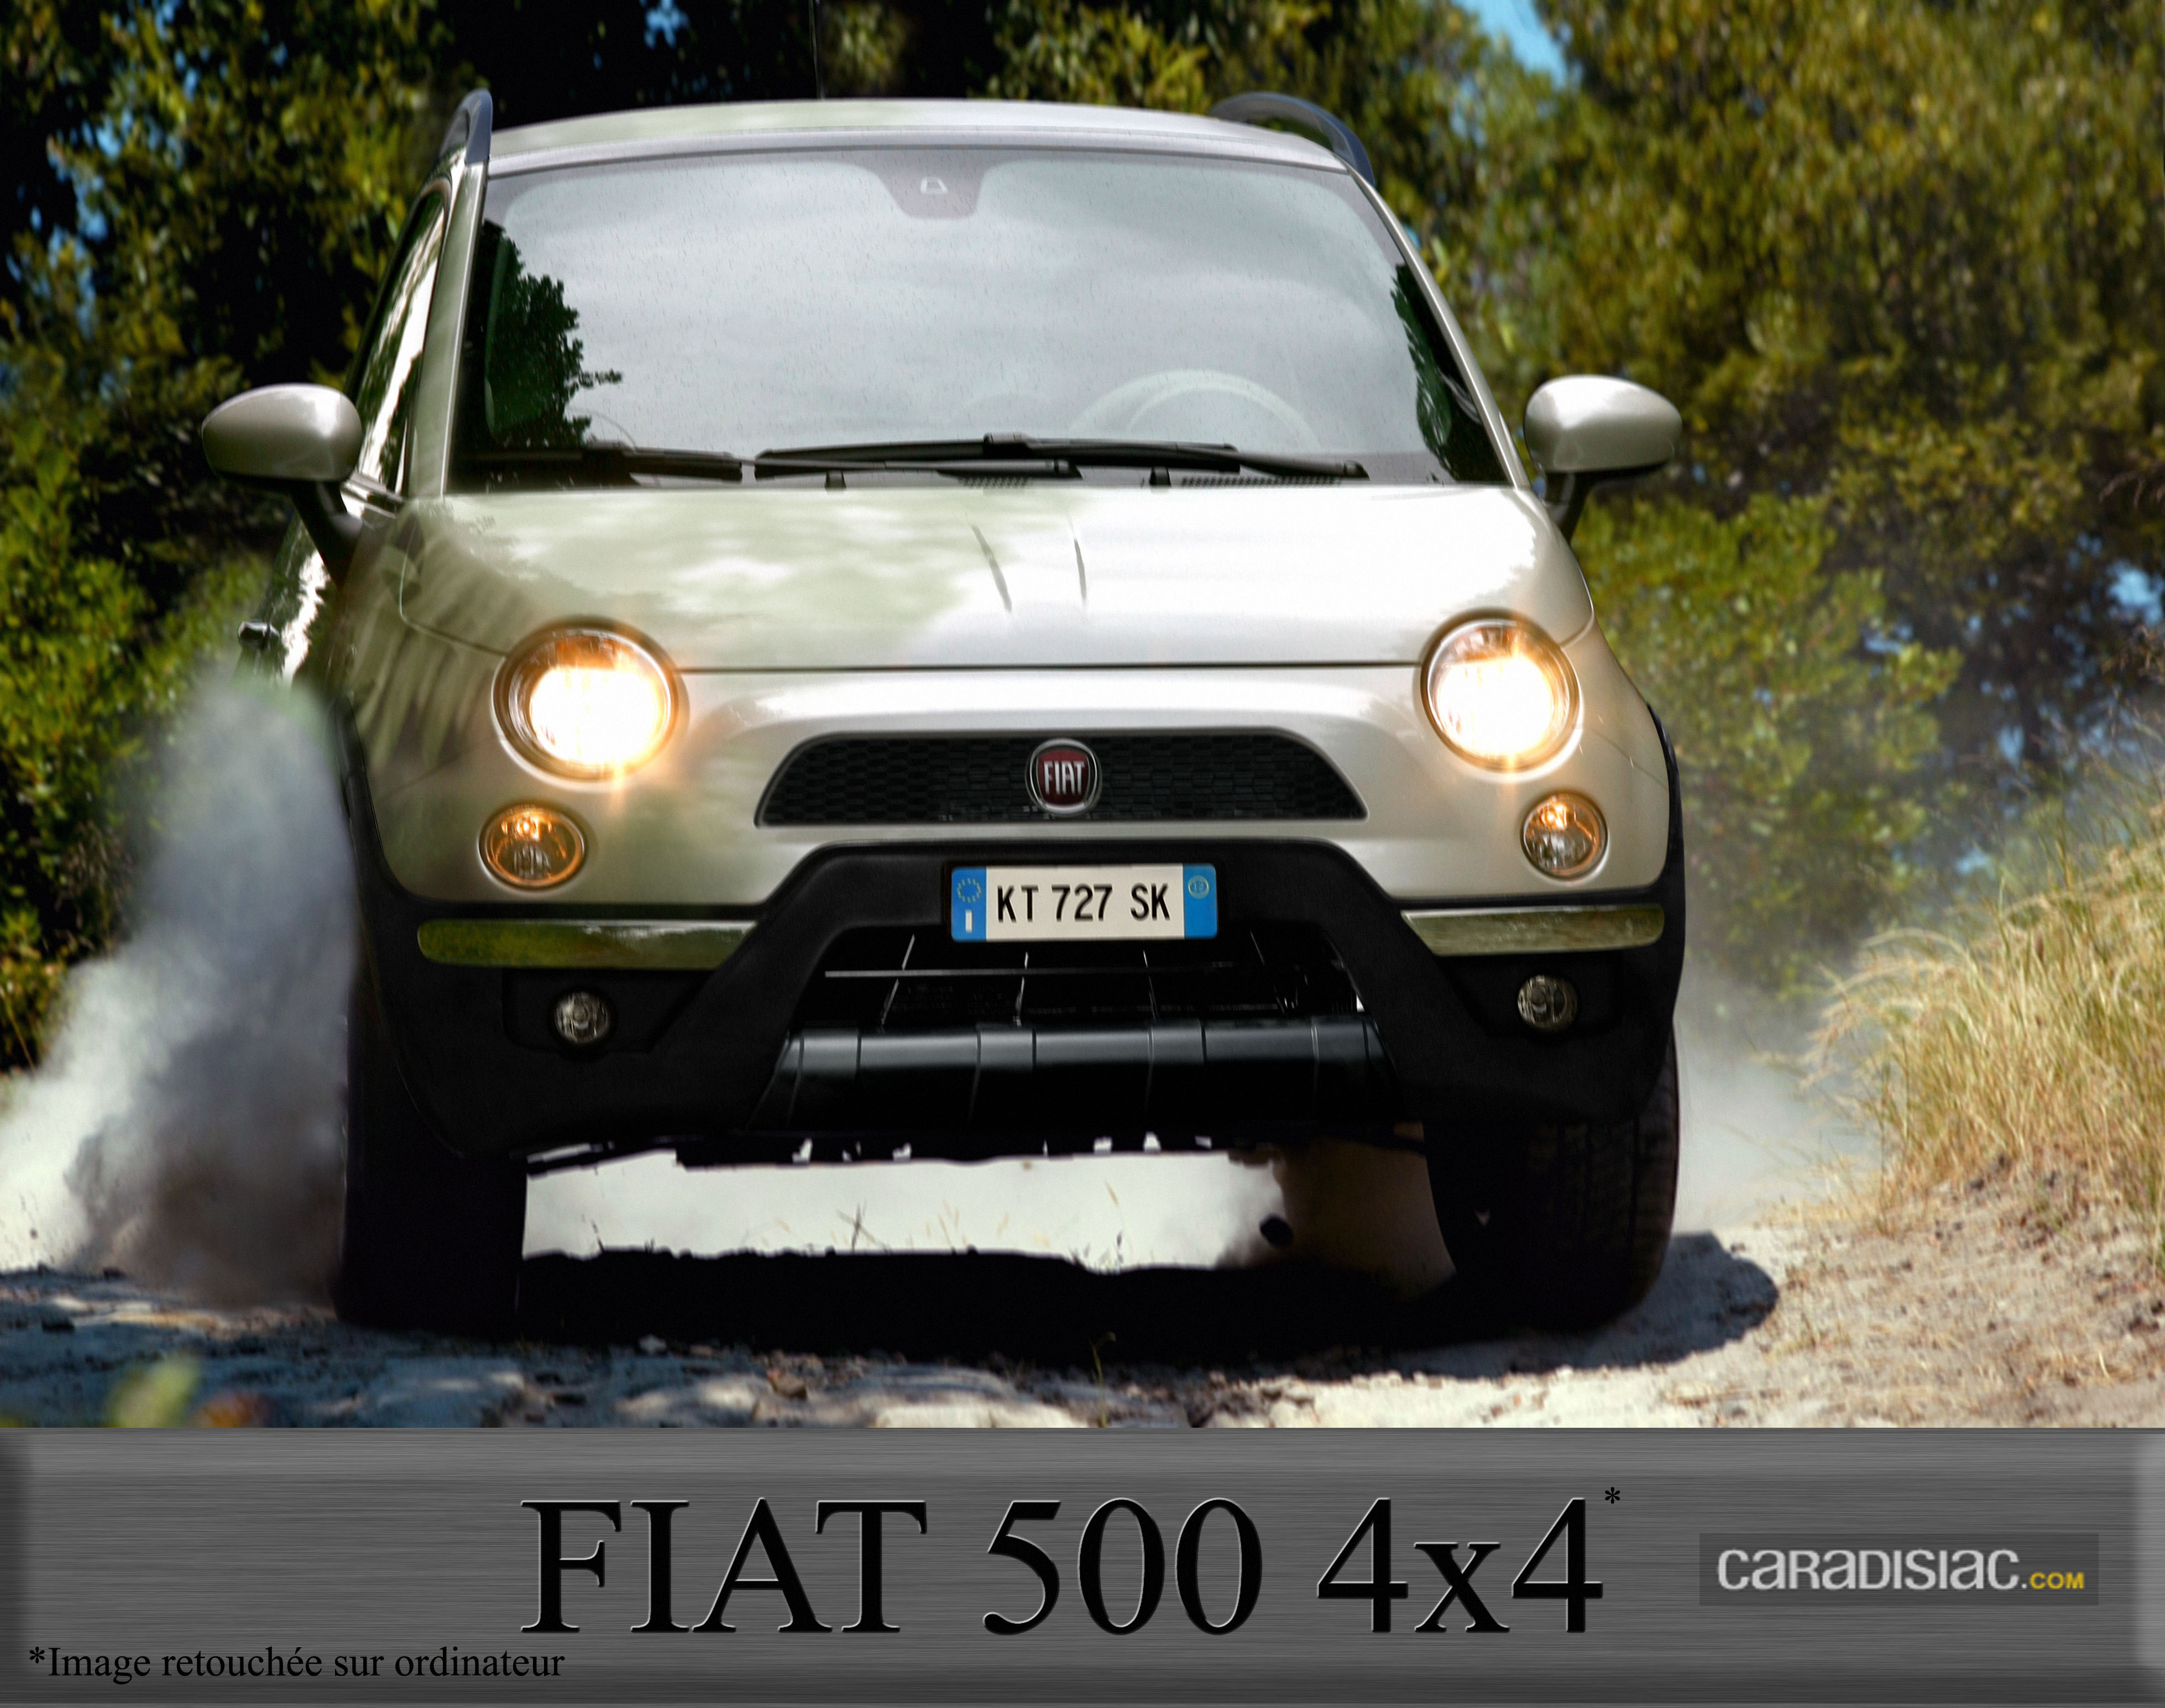 review s tag revved that nz up fiat amore